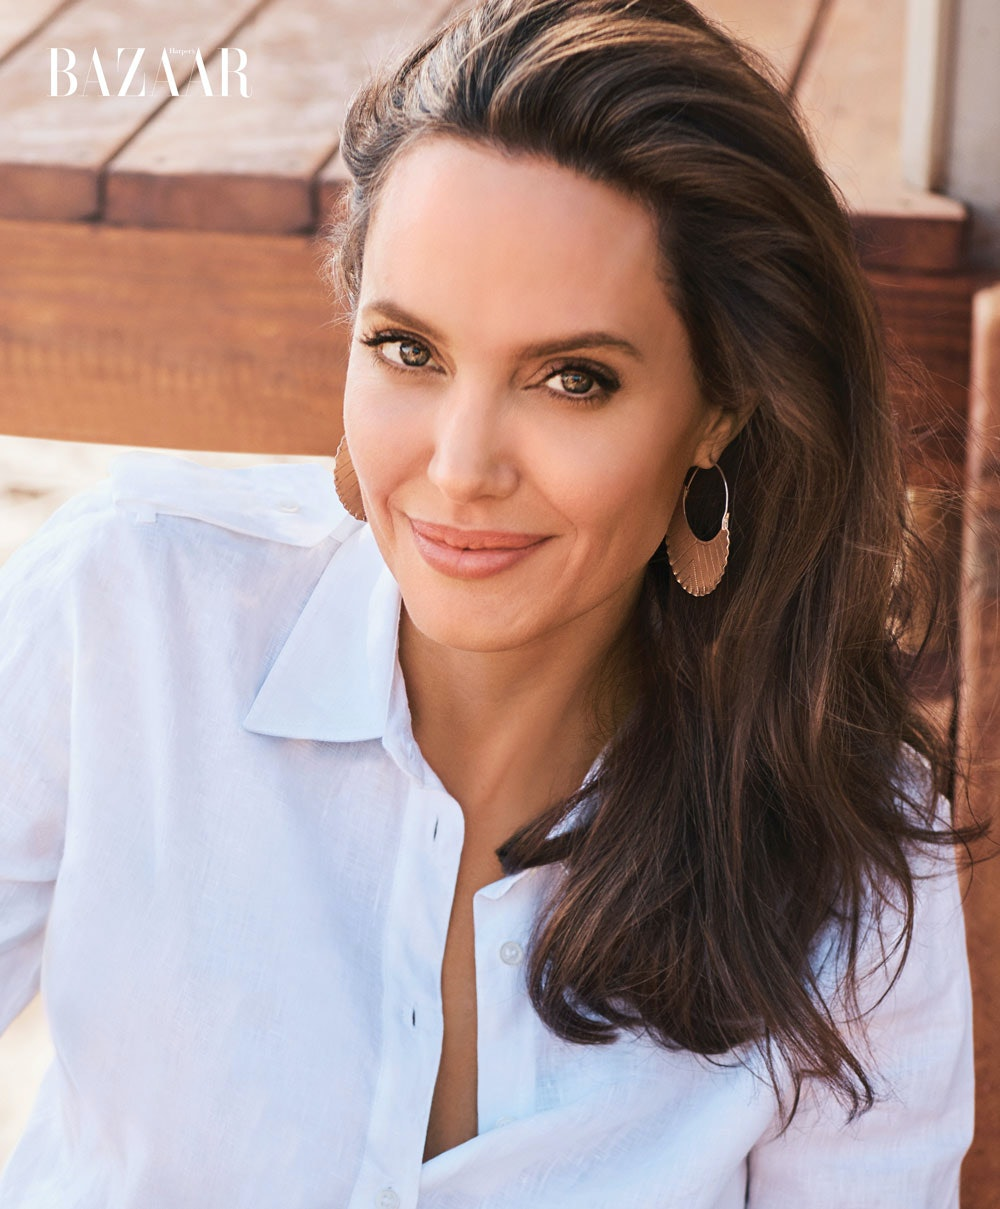 a404fa587a3a Angelina Jolie Looks Amazing On Her Latest Magazine Cover